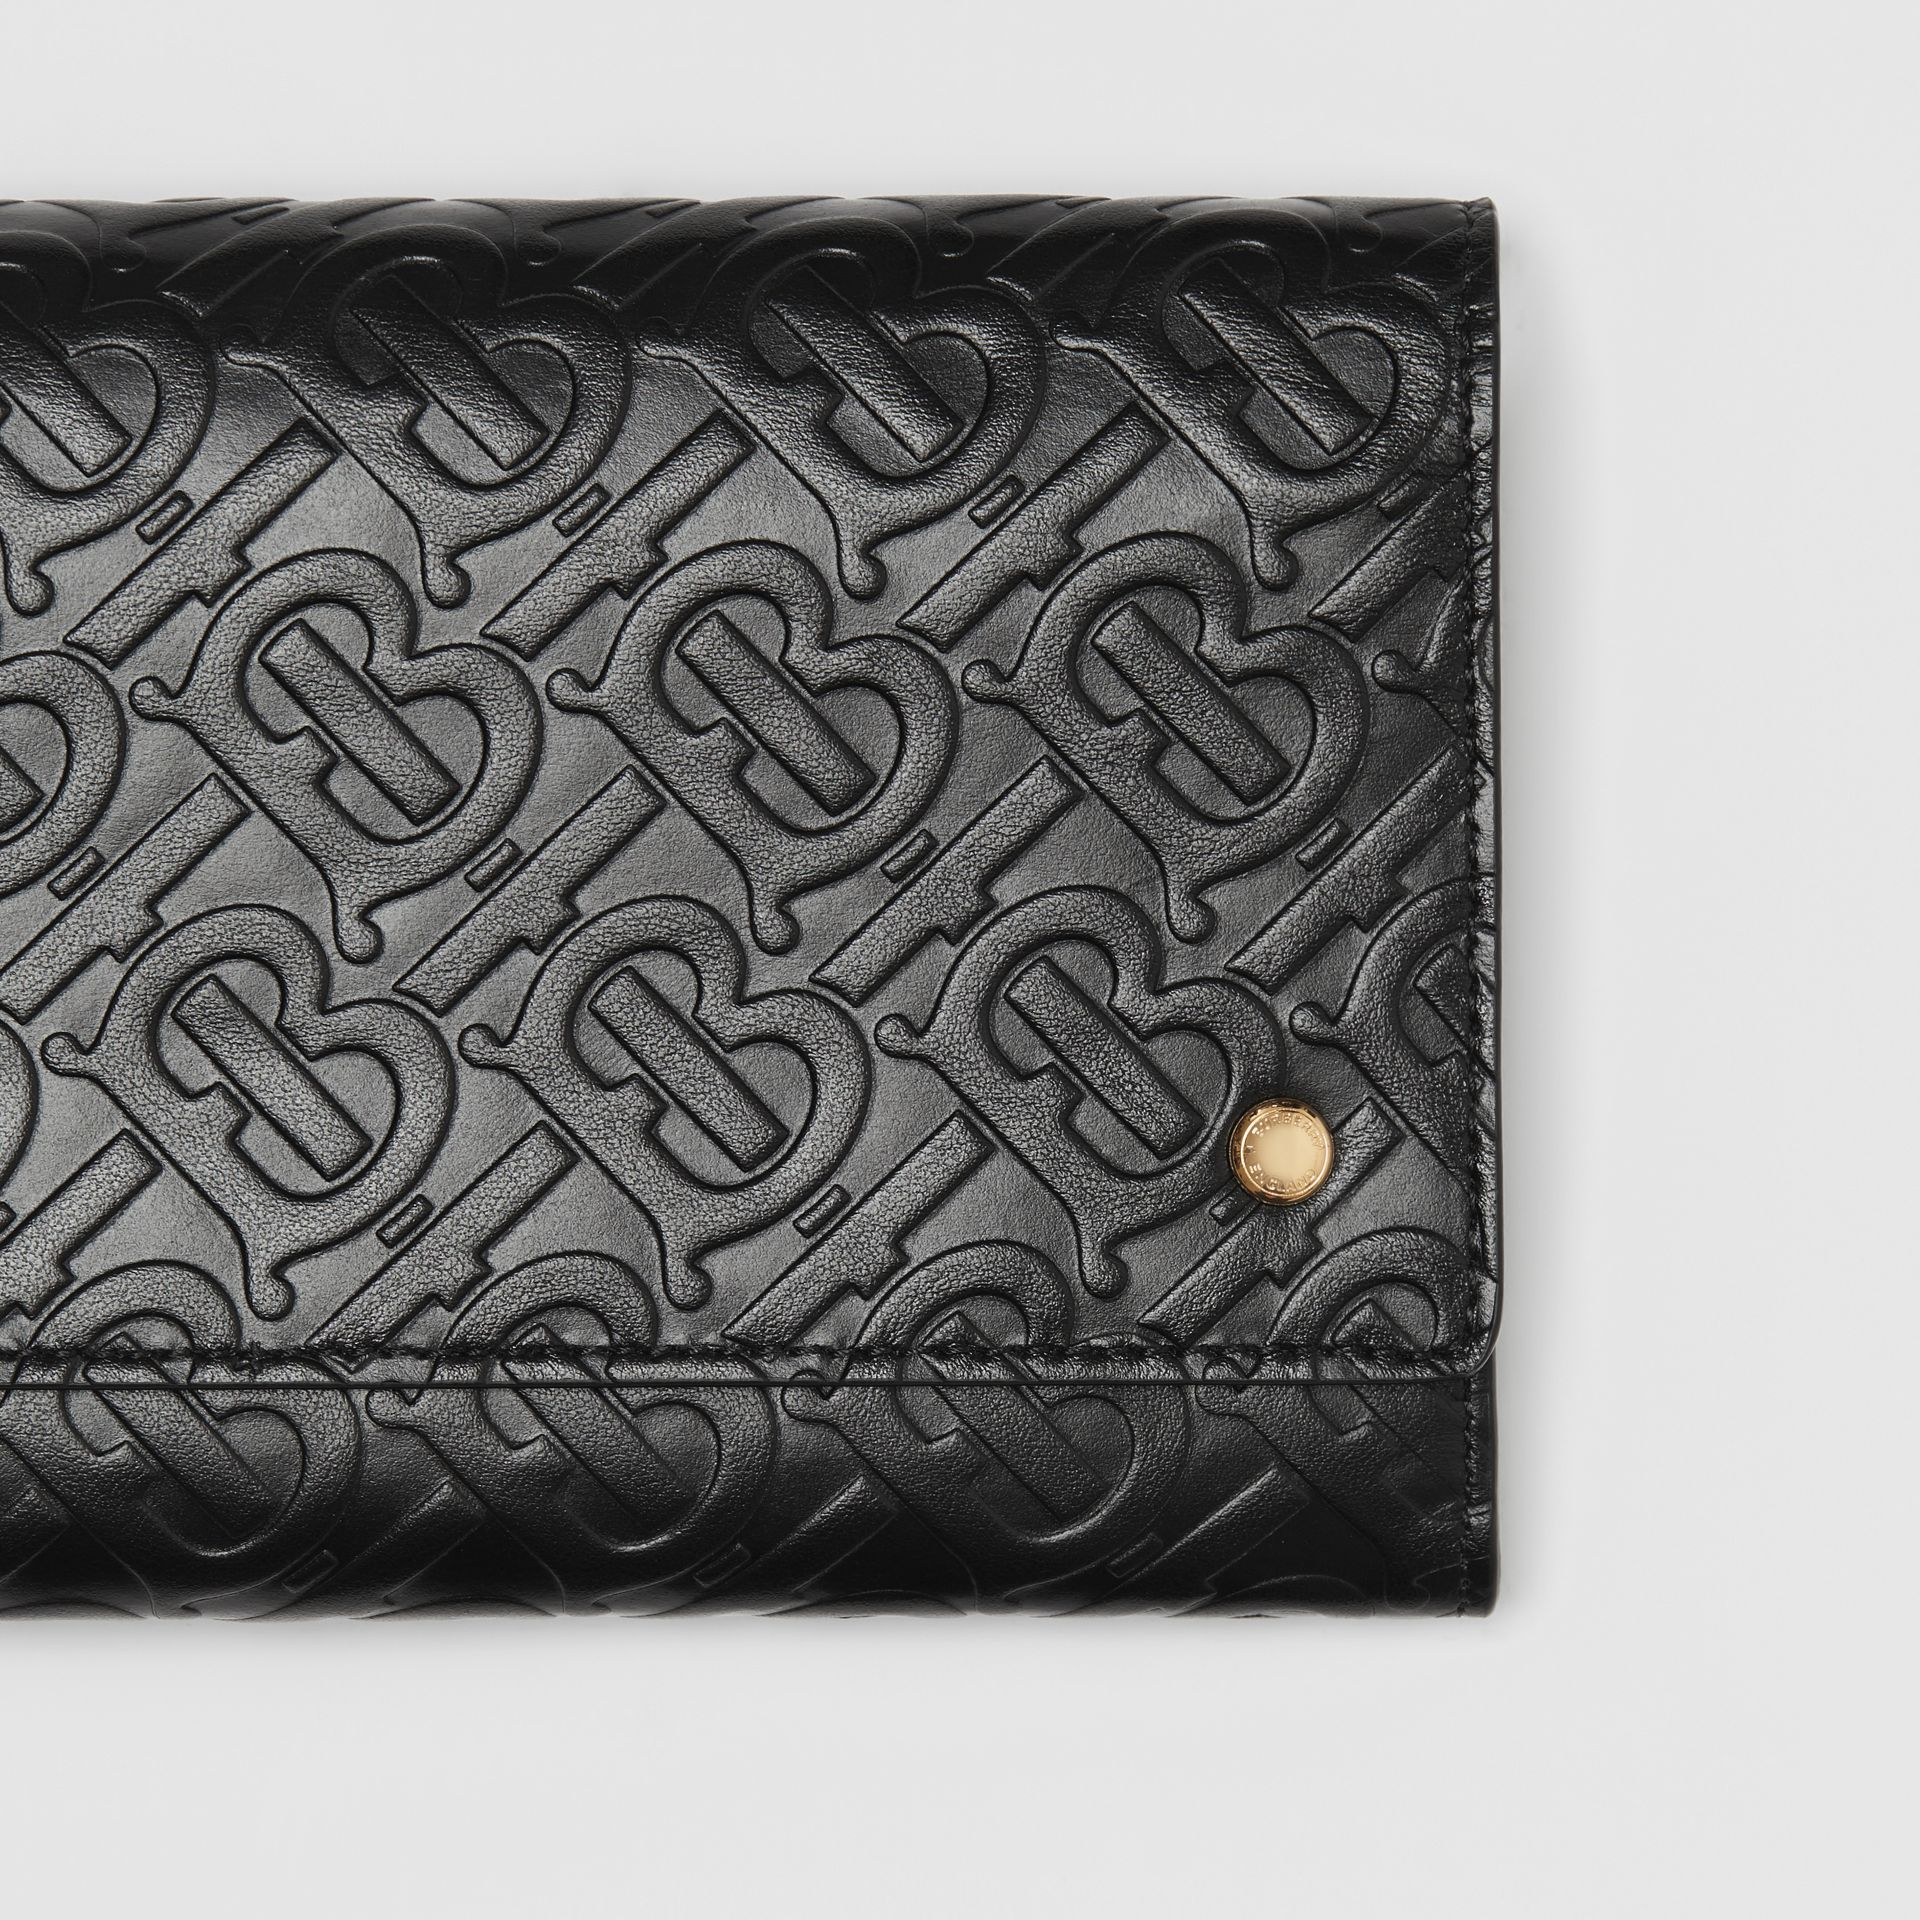 Monogram Leather Wallet with Detachable Strap in Black - Women | Burberry United States - gallery image 1